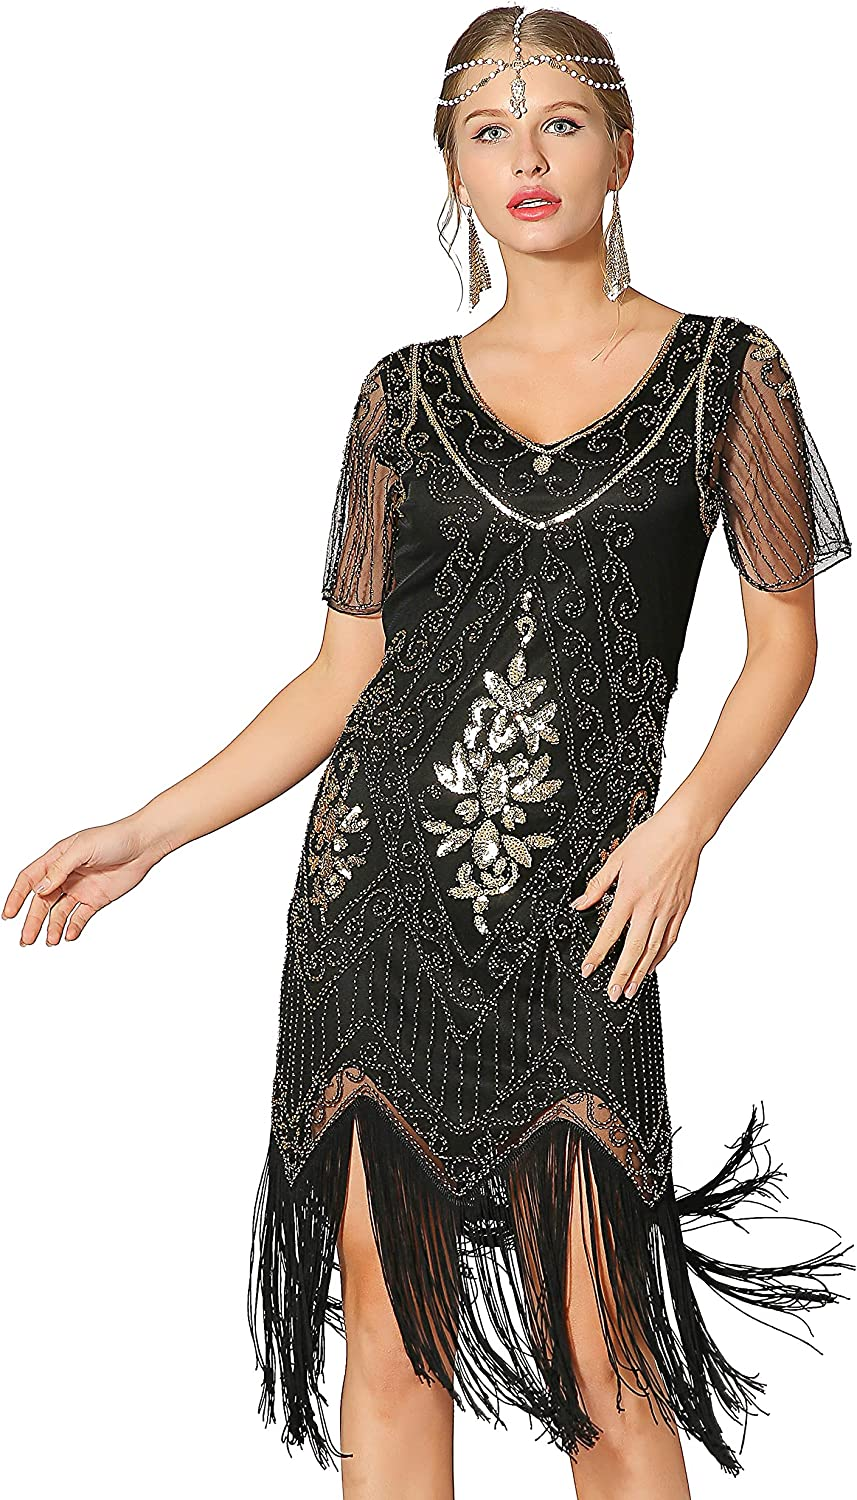 Metme Women's Roaring 1920s We OFFer at cheap prices Gatsby Be super welcome Short Dresses Sleeve Co Dress